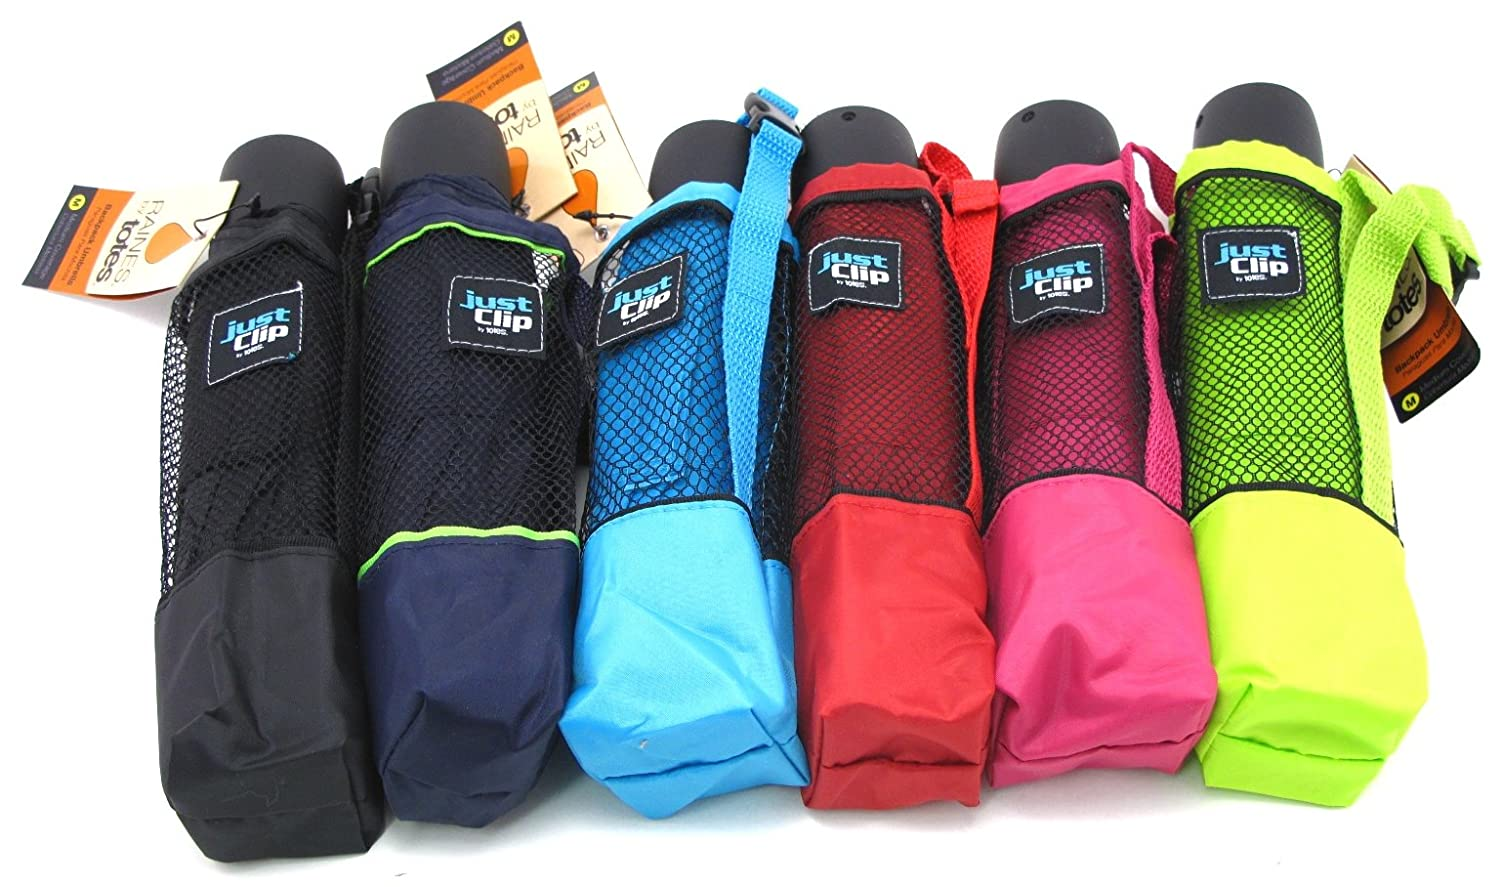 Amazon.com: Raines Umbrella Just Clip Back Pack 9 Inch Med (Assorted Colors): Clothing